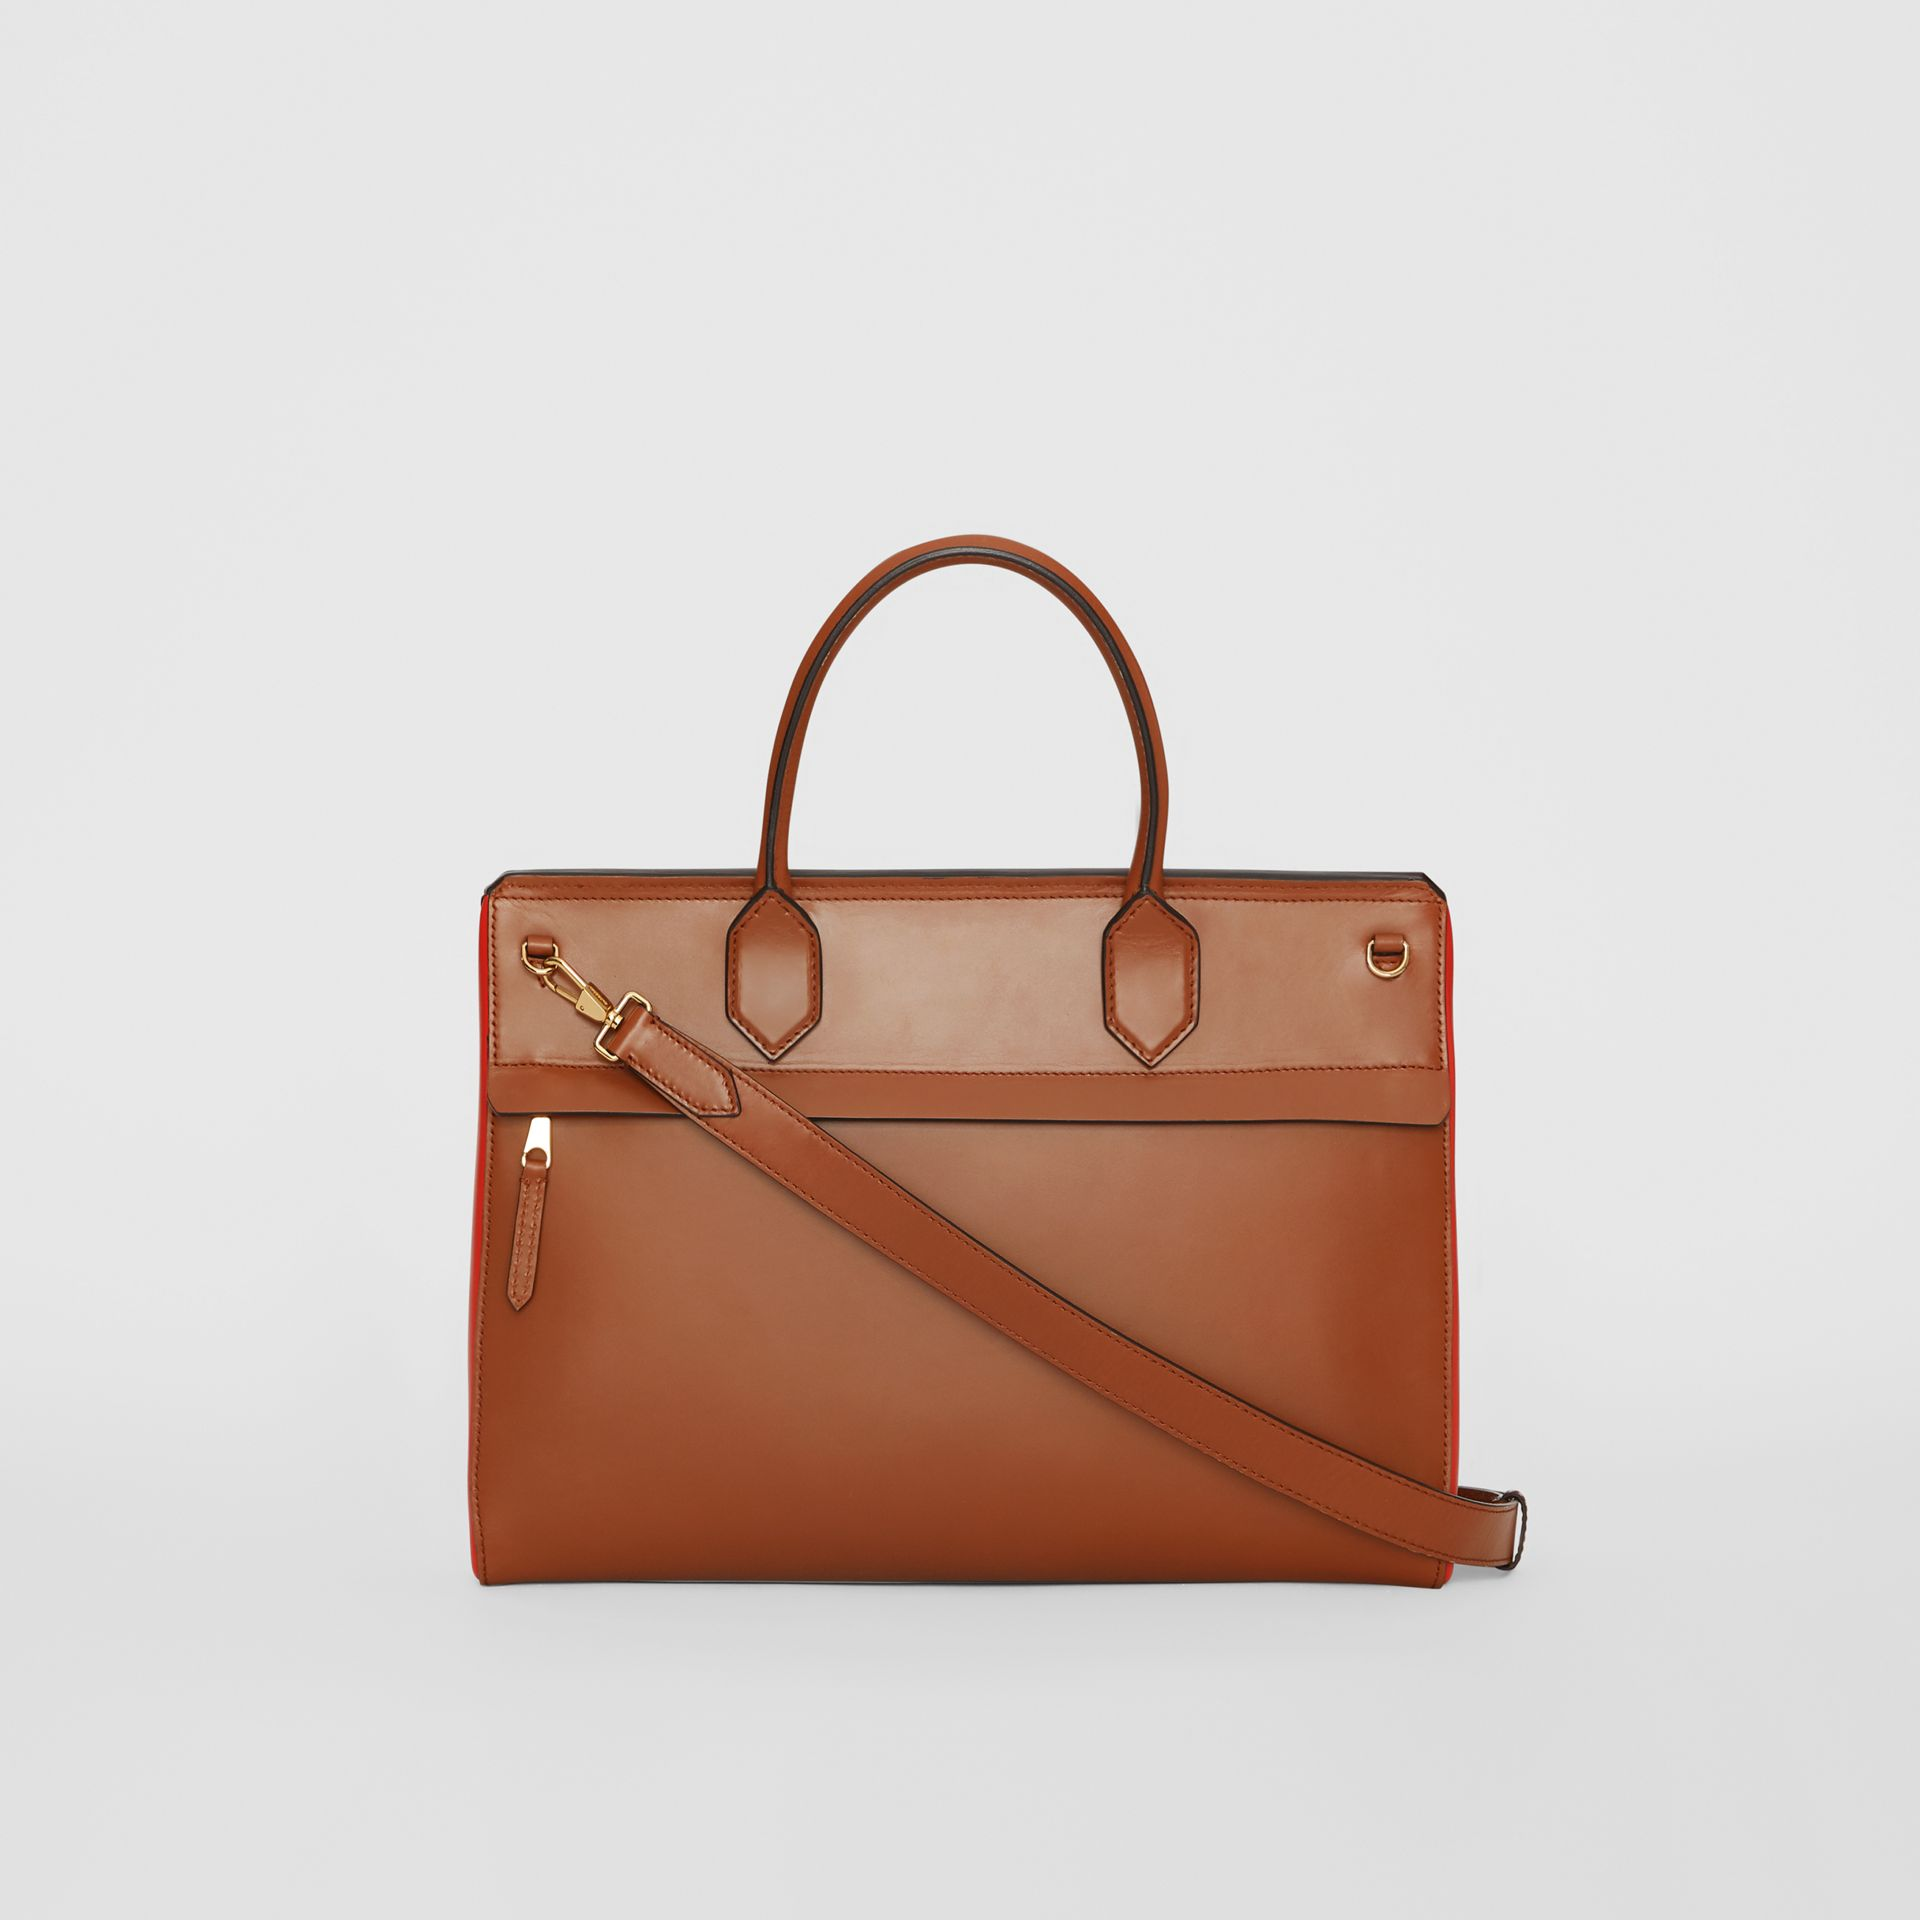 Medium Leather Elizabeth Bag in Malt Brown - Women | Burberry Australia - gallery image 6